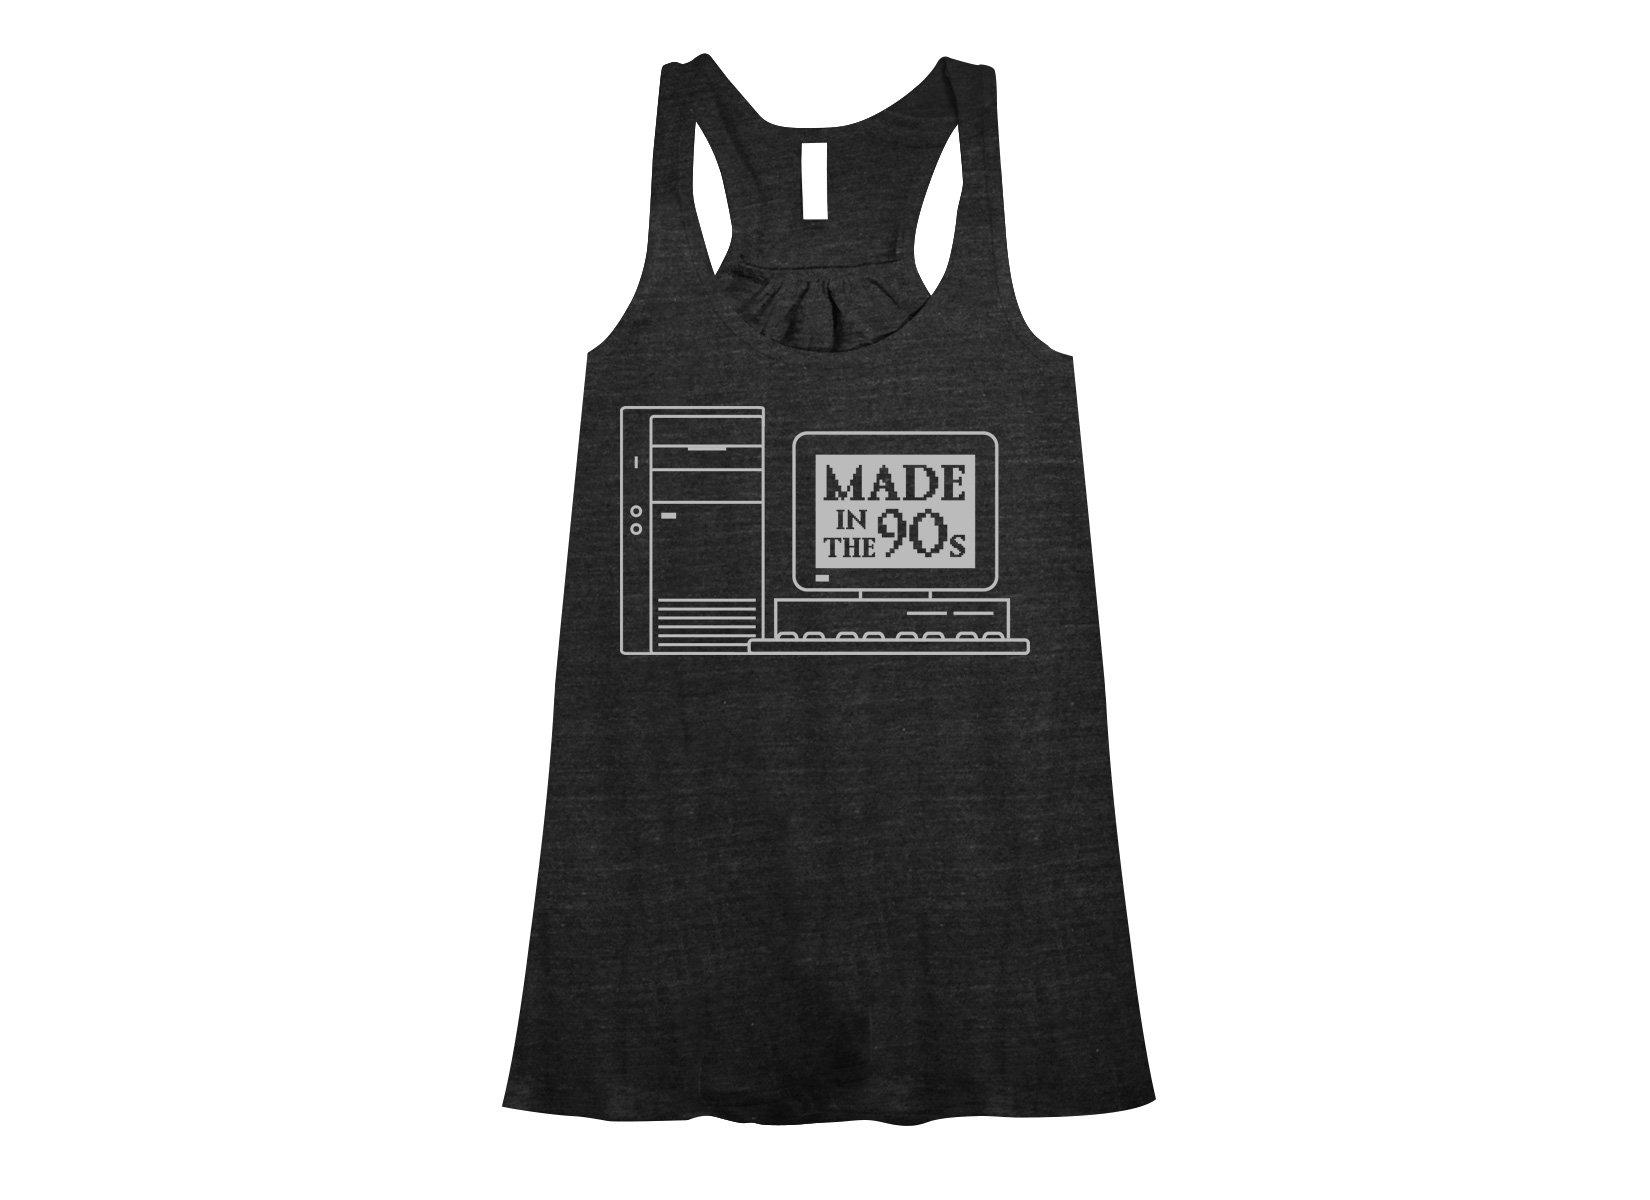 Made In The 90s on Womens Tanks T-Shirt